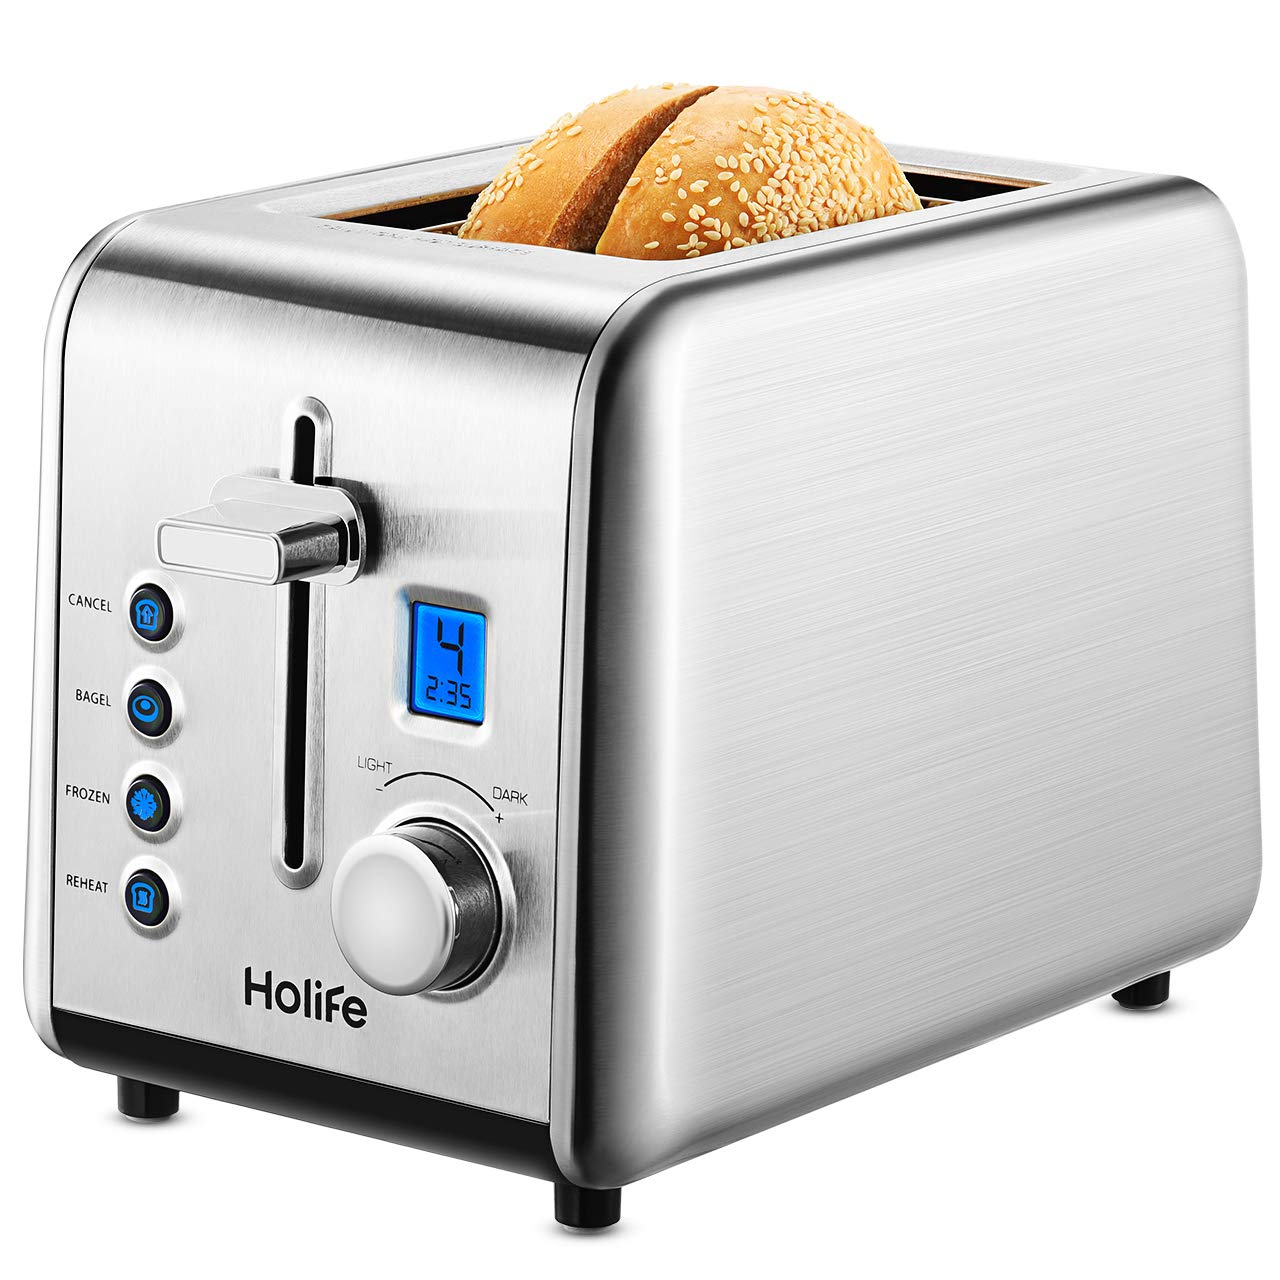 2 Slice Toaster, HoLife [ Upgraded LCD Digital Countdown Timer] Bagel Toaster Stainless Steel Toaster (6 Bread Shade Settings, Bagel/Defrost/Reheat/Cancel Function, High-lift, Extra Wide Slot, Silver) by Holife